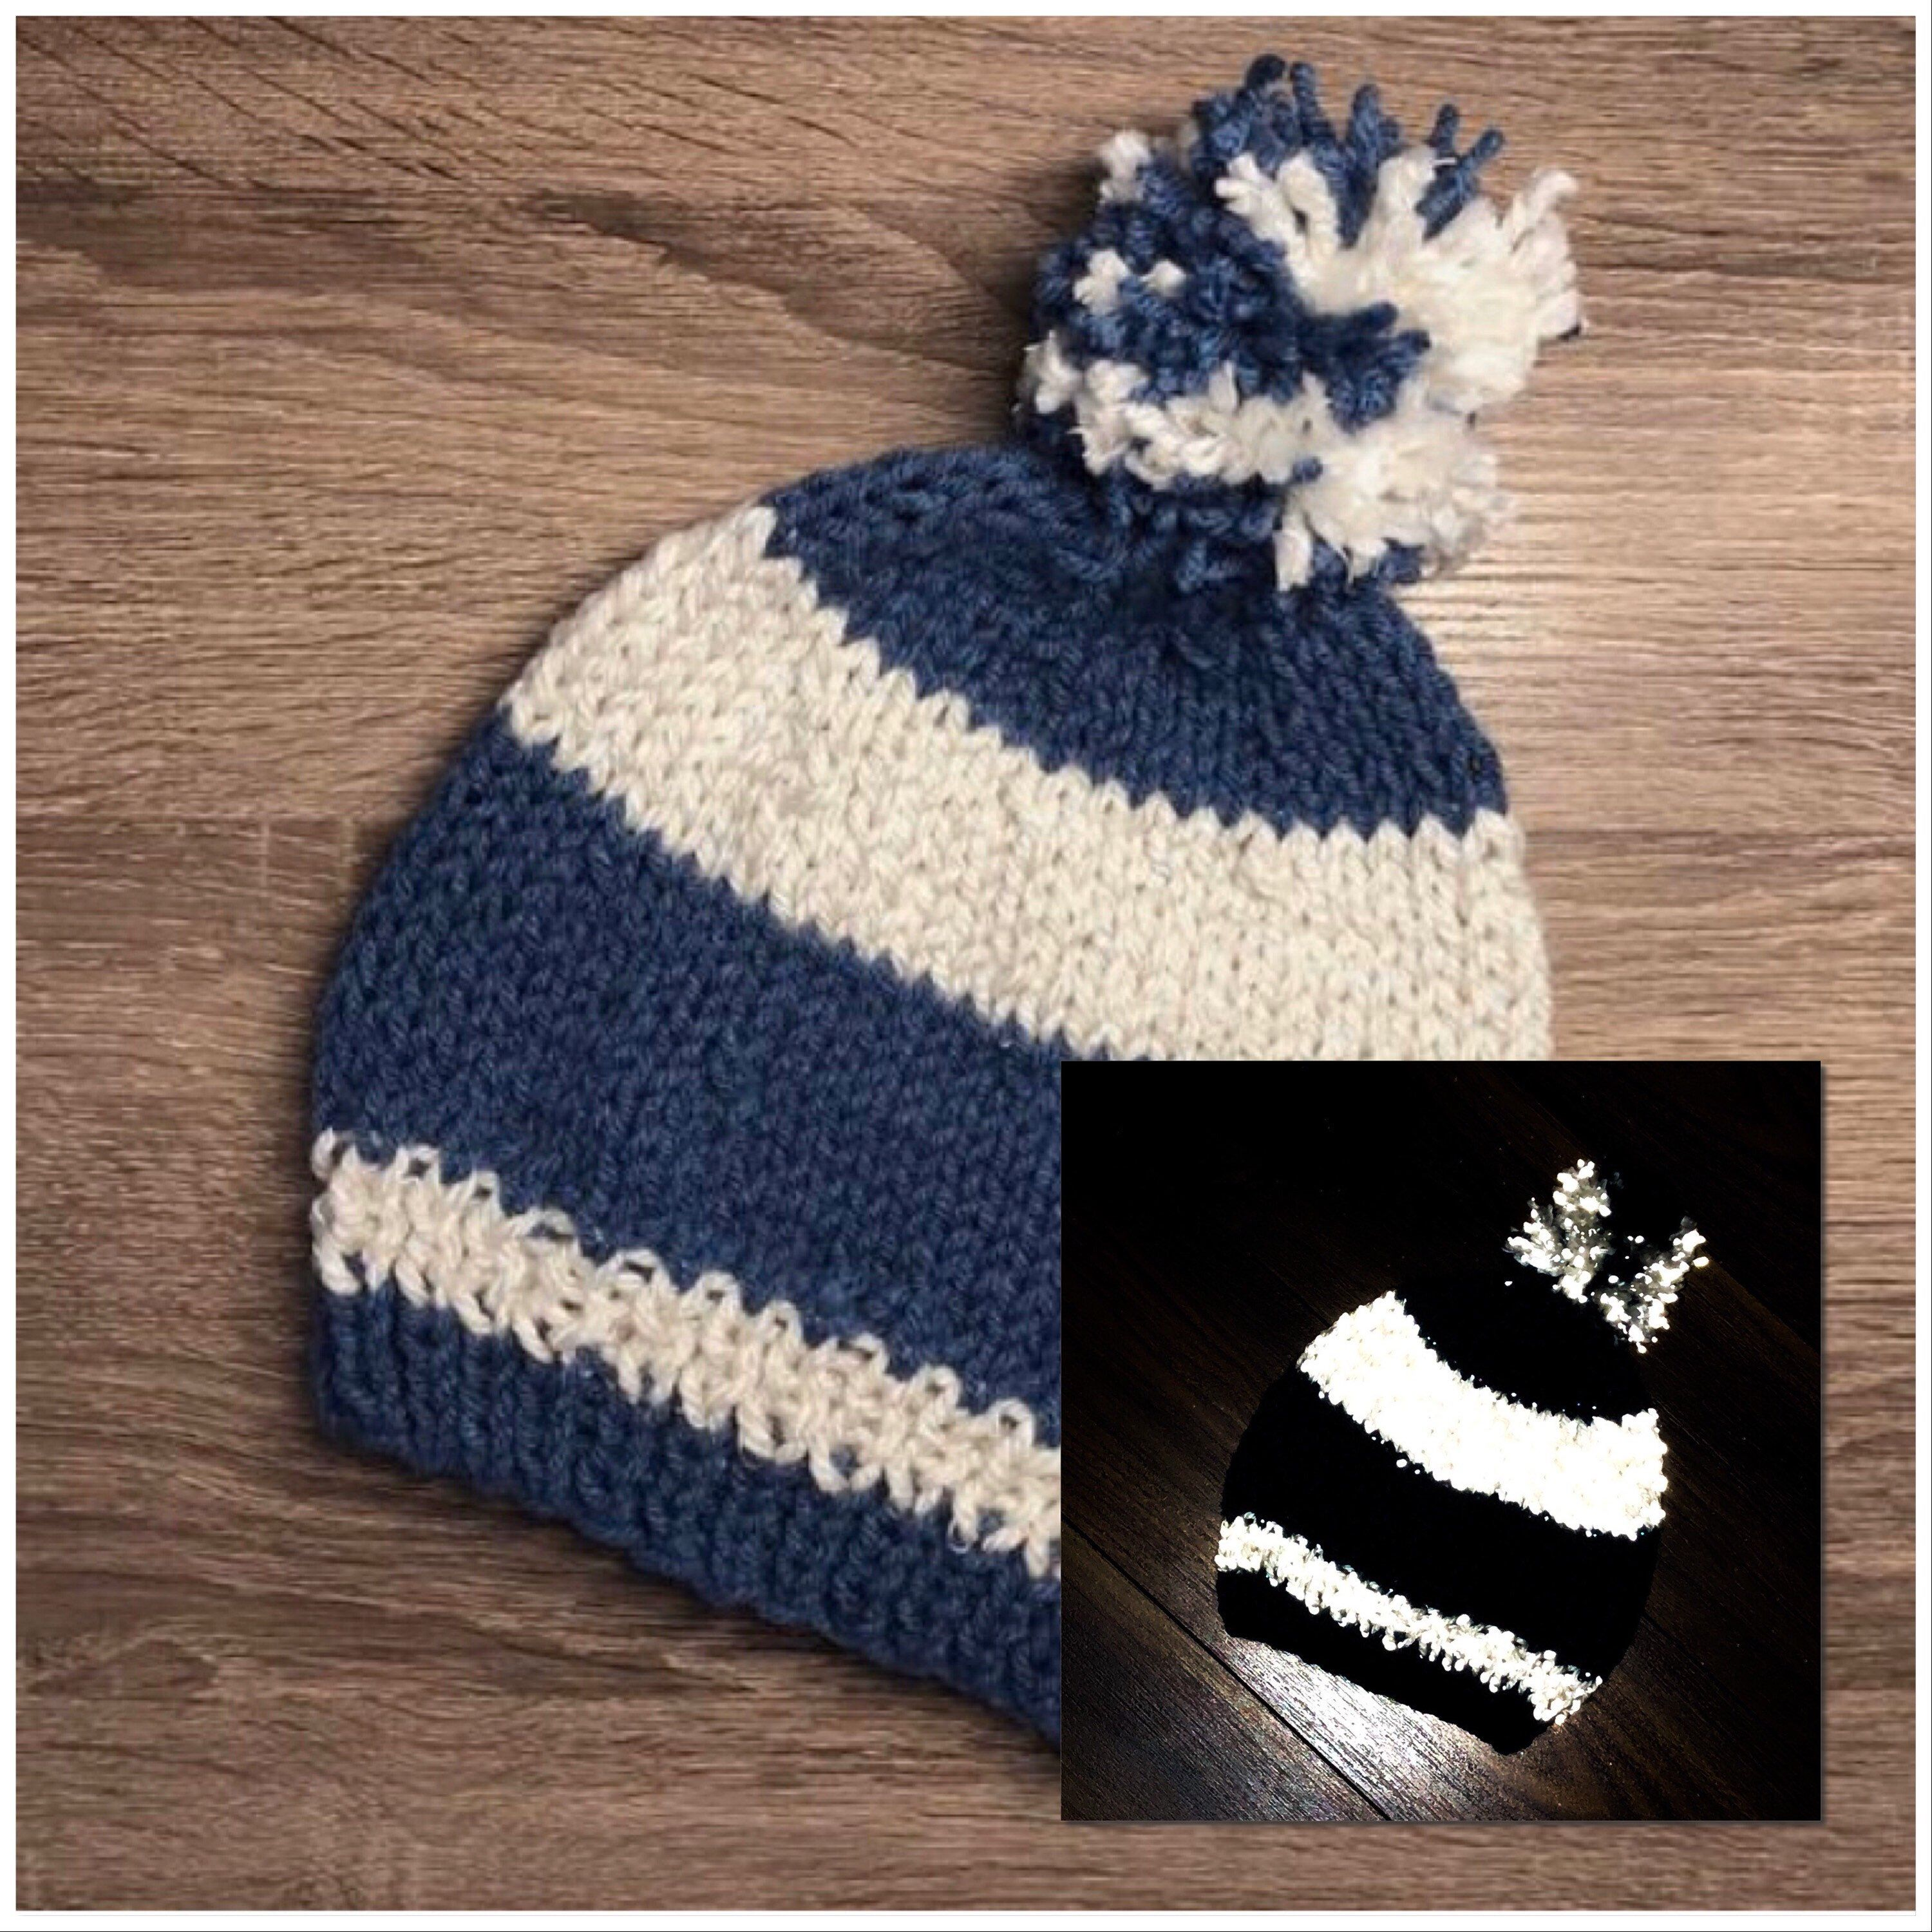 Handknit Teen Beanie with Pom Pom Christmas Gift Idea Blue and White Hand Knit Hat Two-Tone Hand Knitted Beanie Handmade Hat